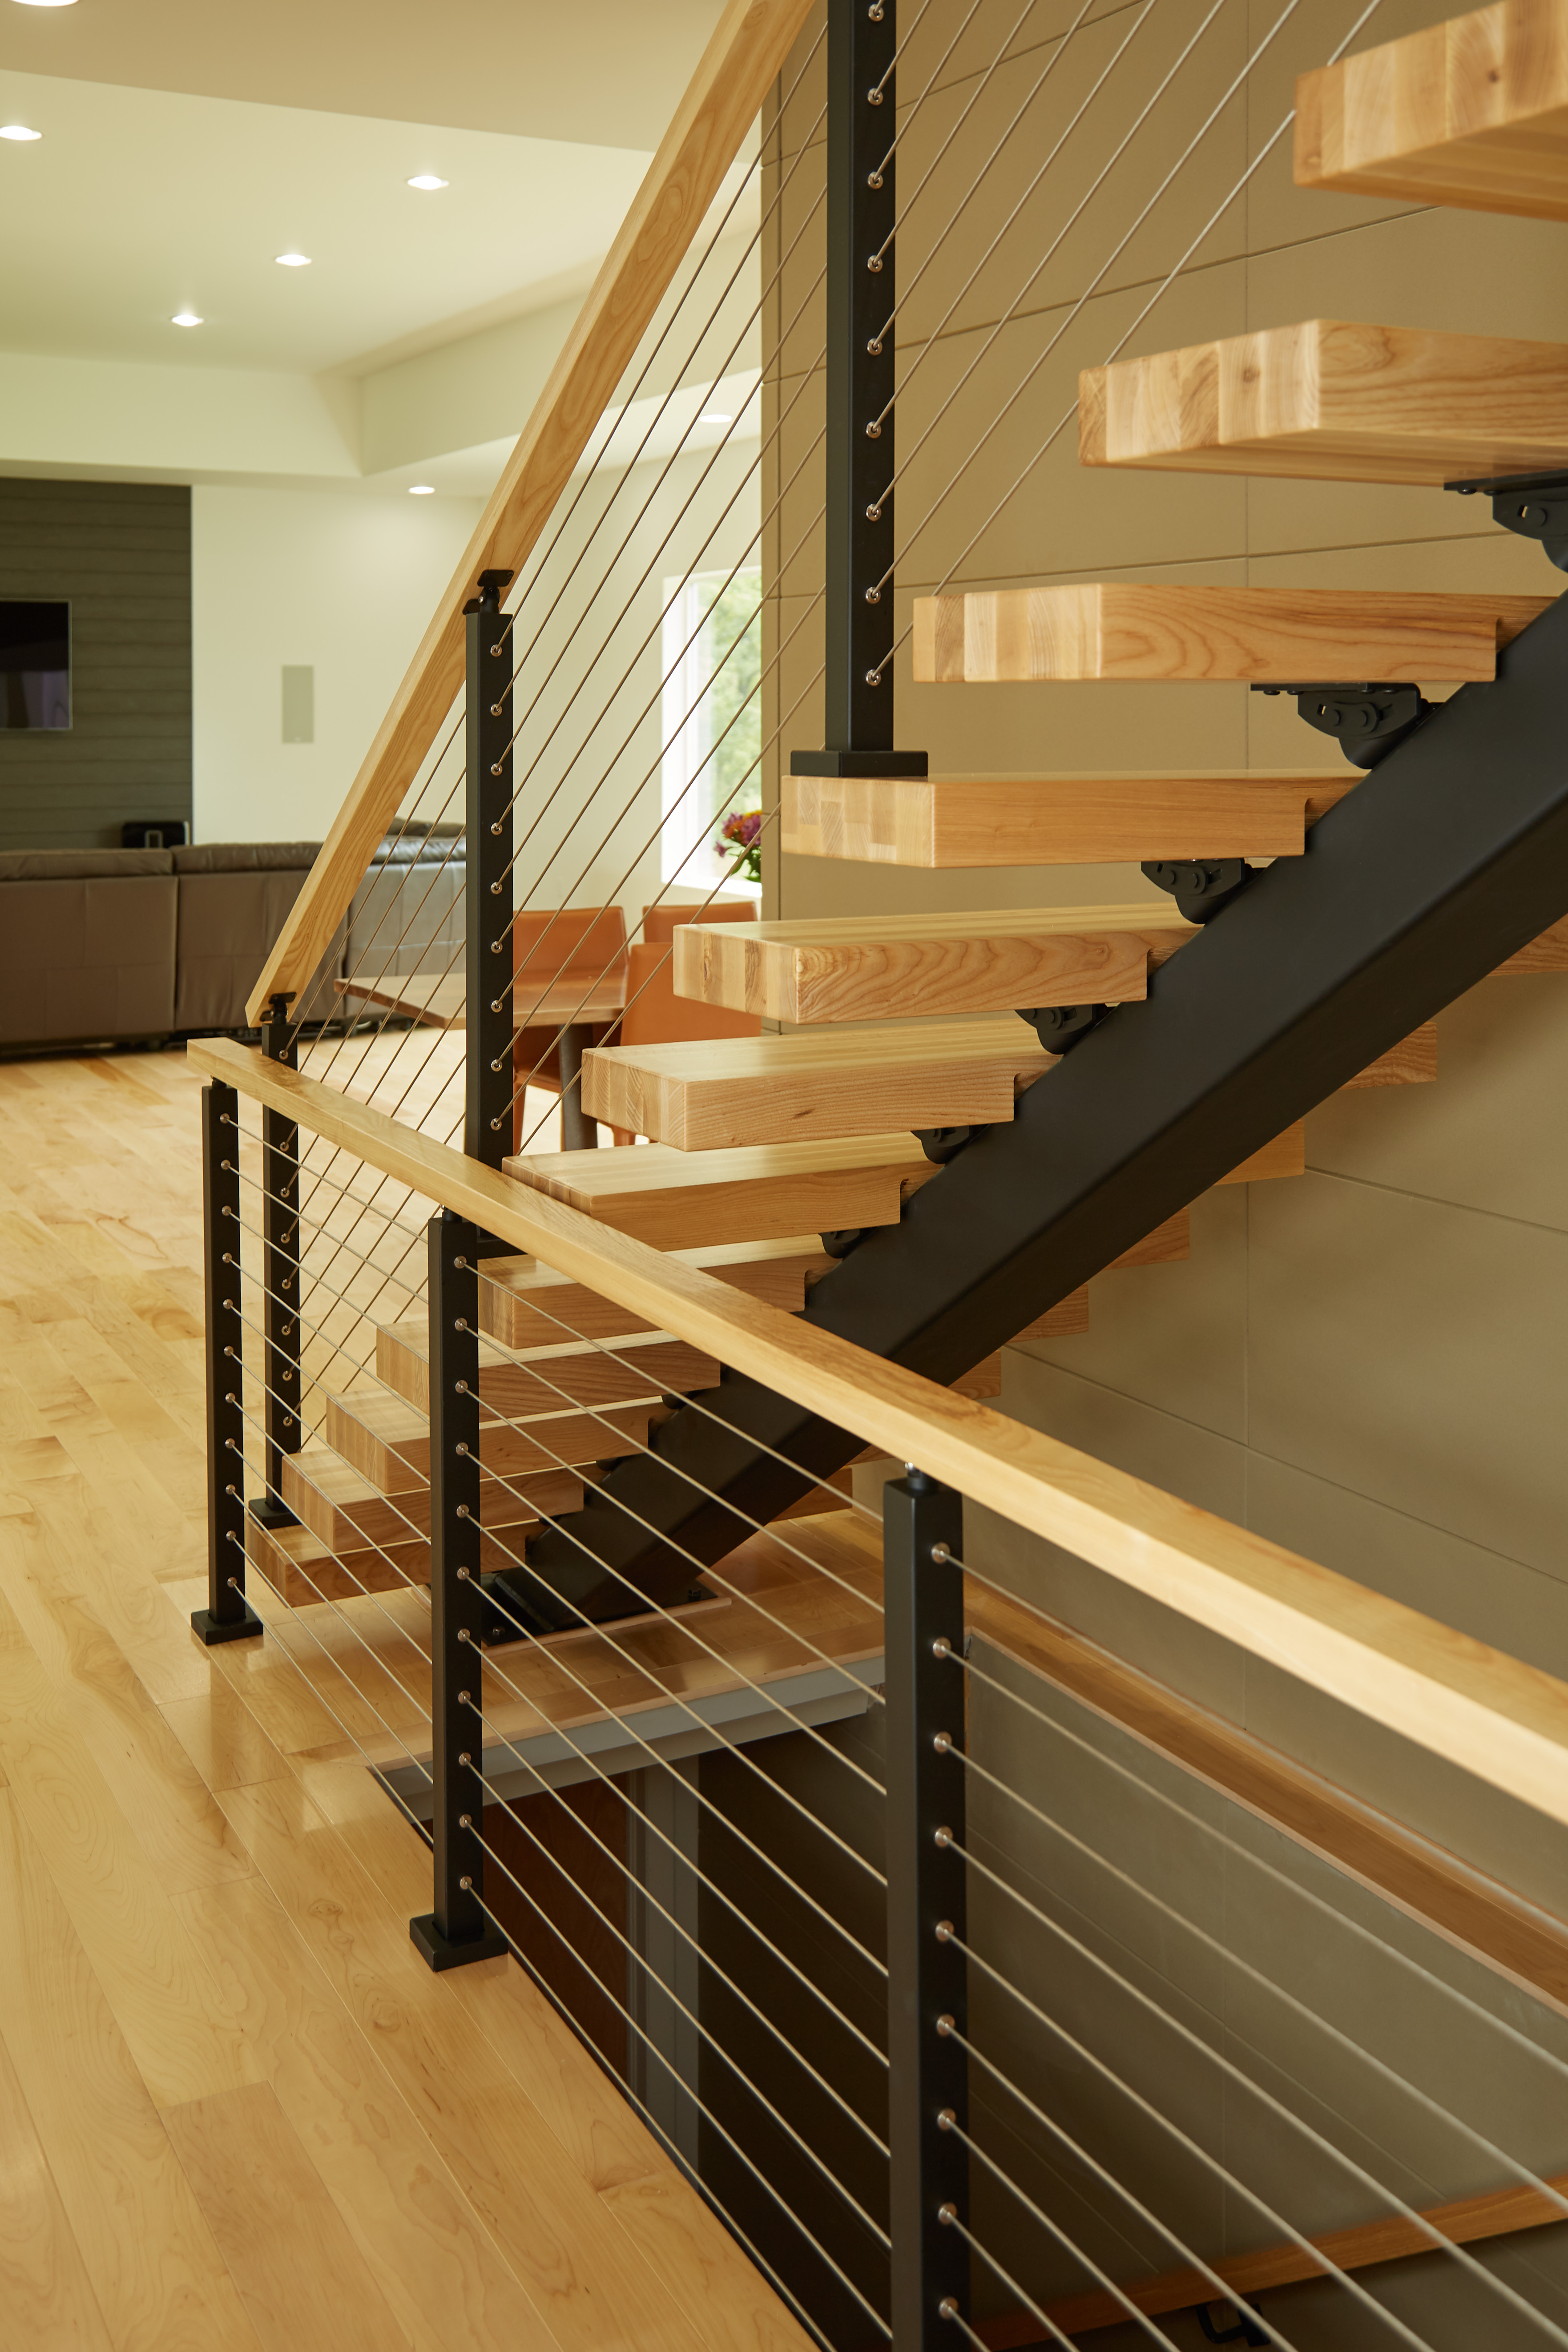 stair rail installation for home | Full System Contemporary Home - Viewrail